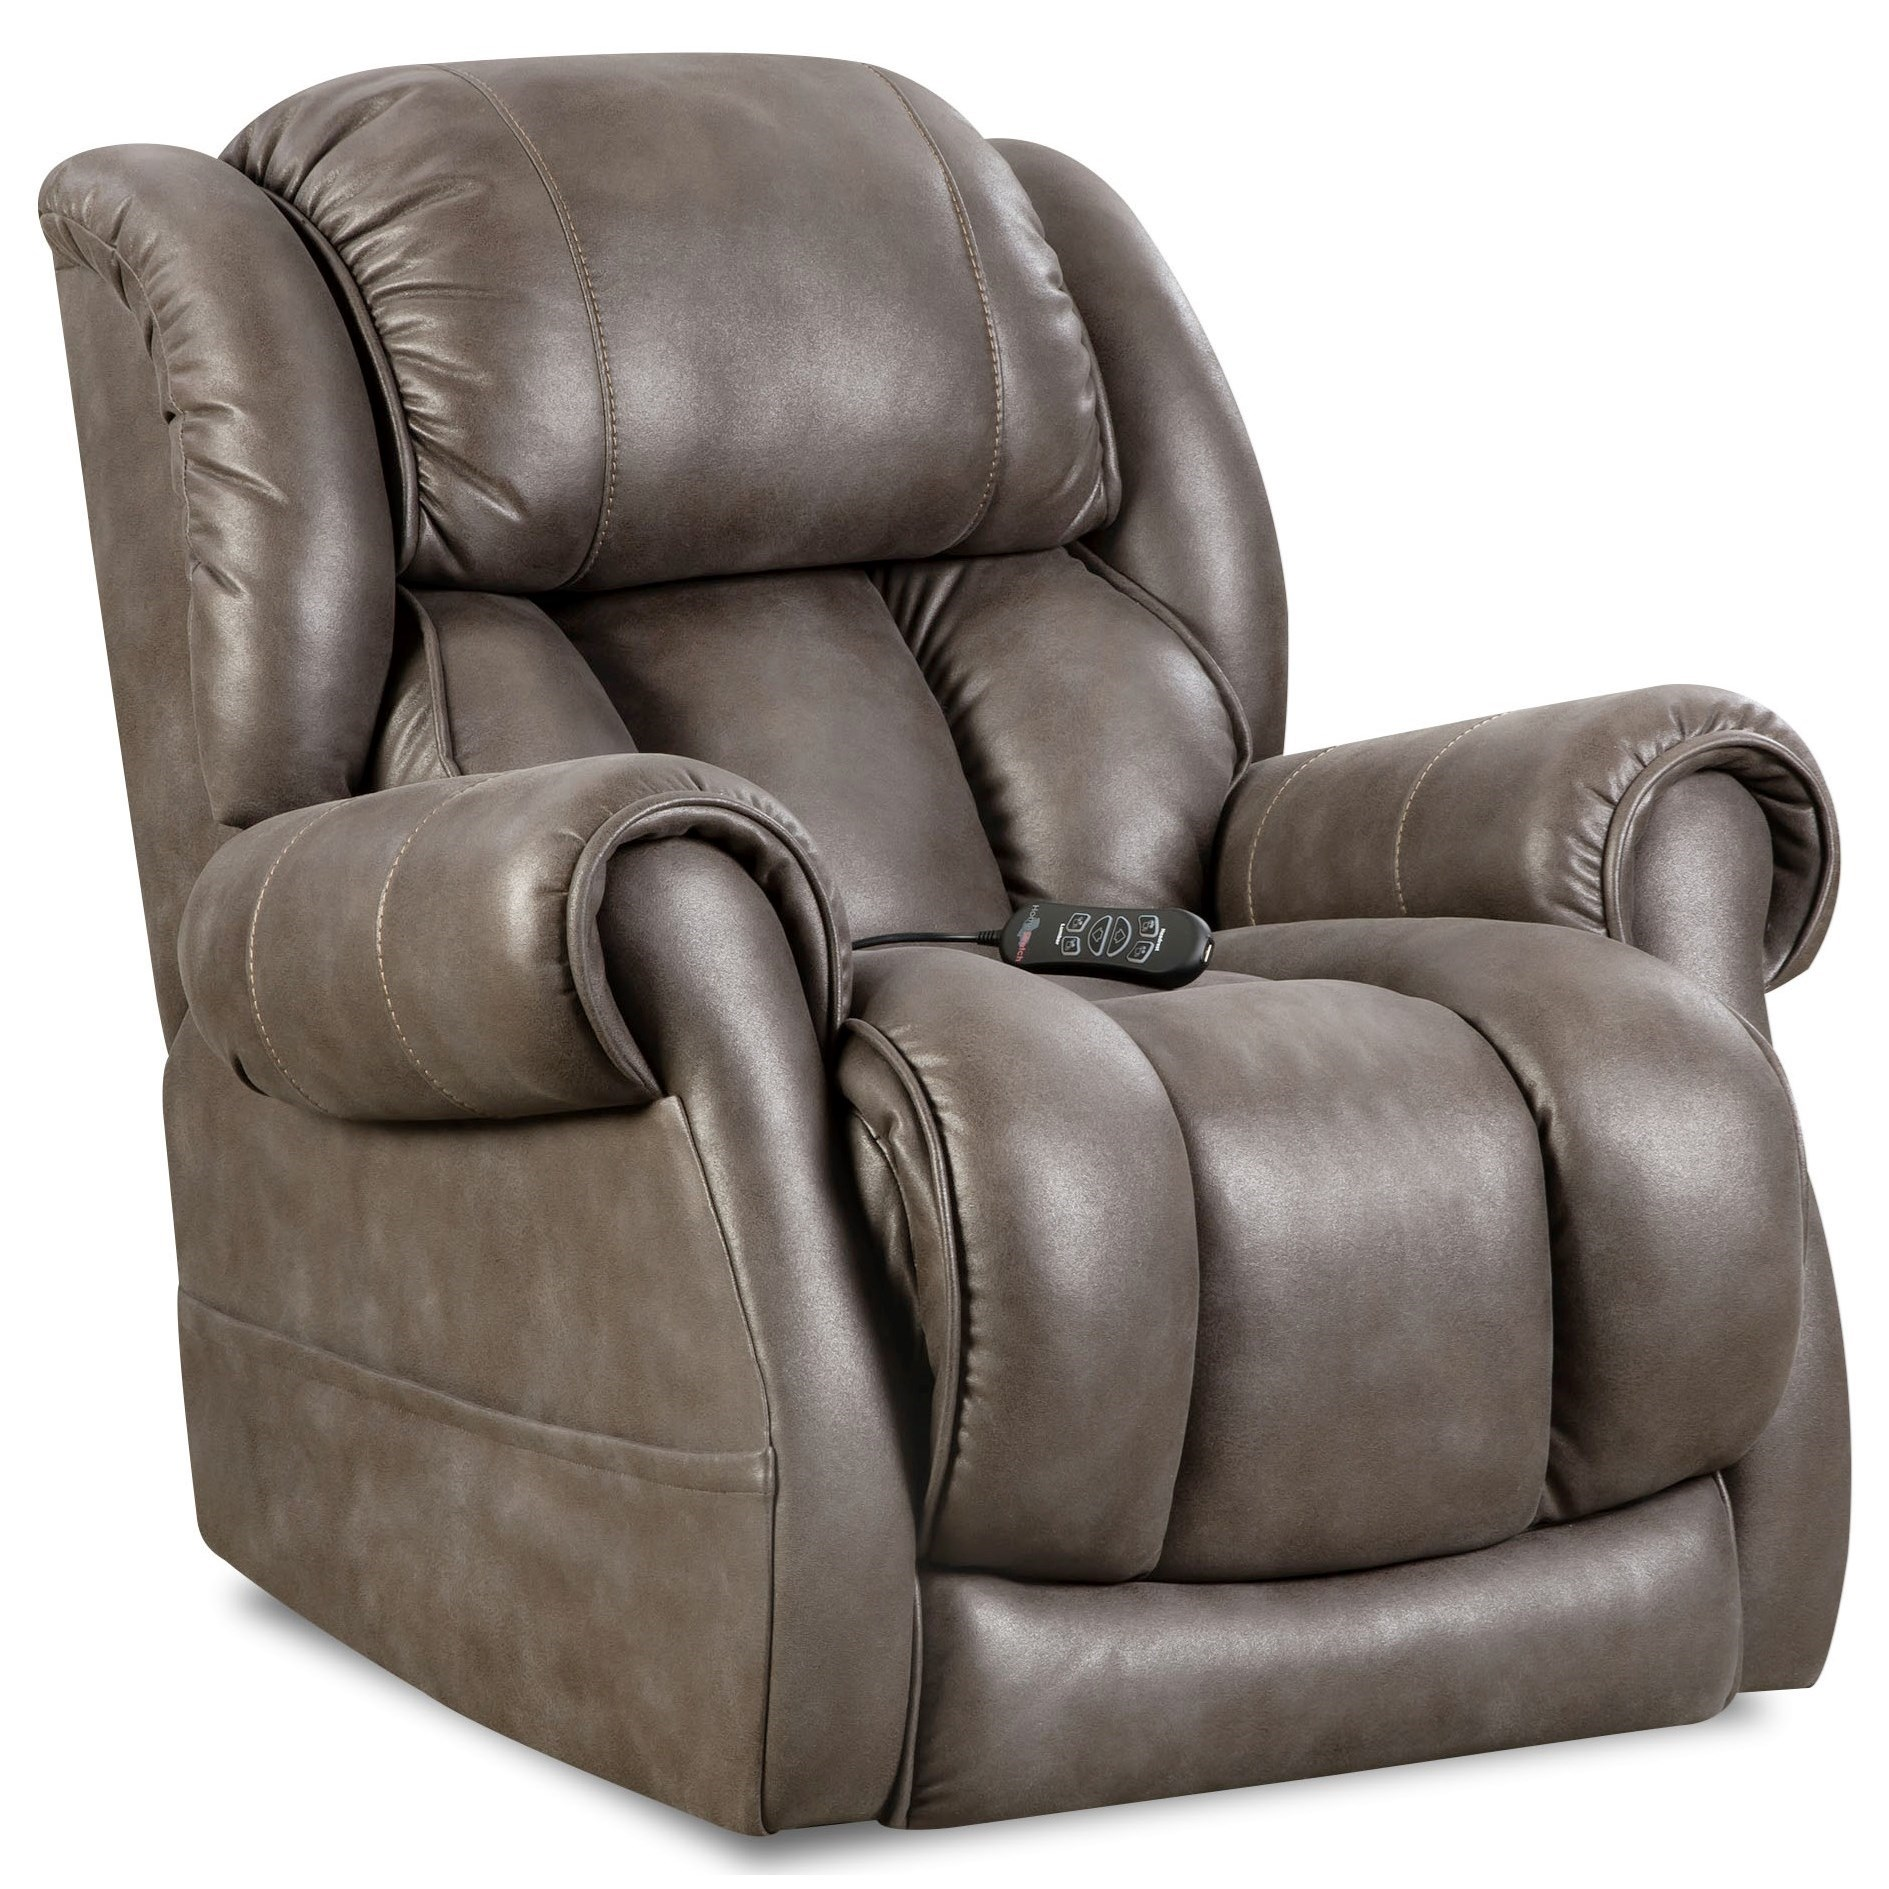 Atlantis Power Recliner by HomeStretch at Standard Furniture